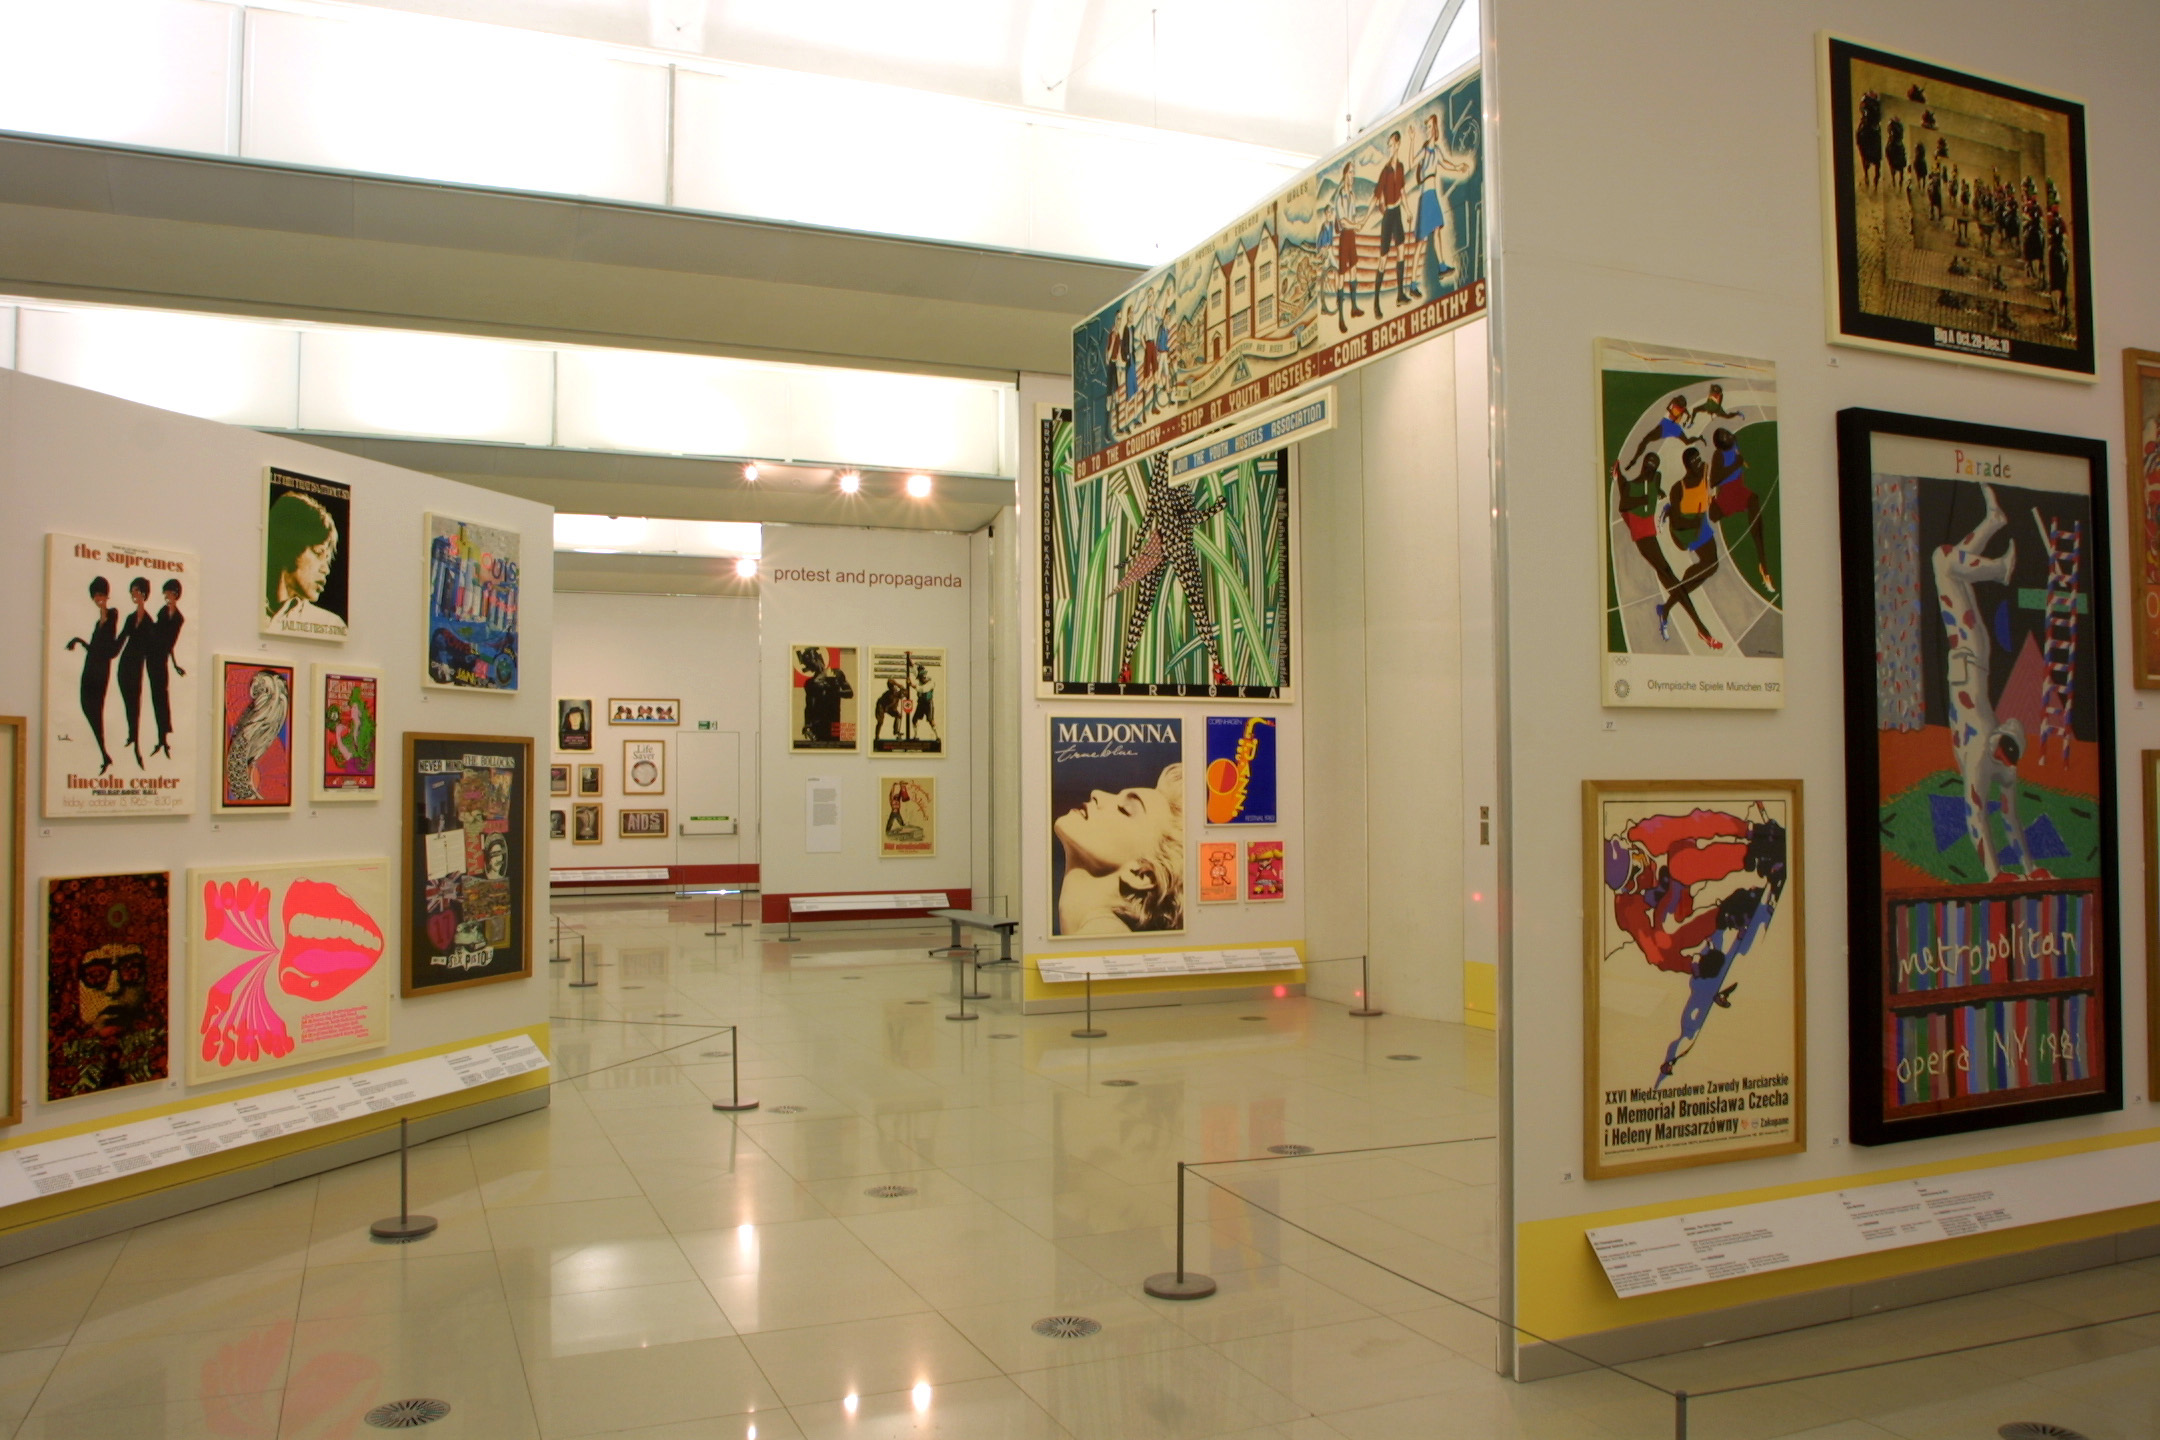 Exhibition at the Millennium Gallery